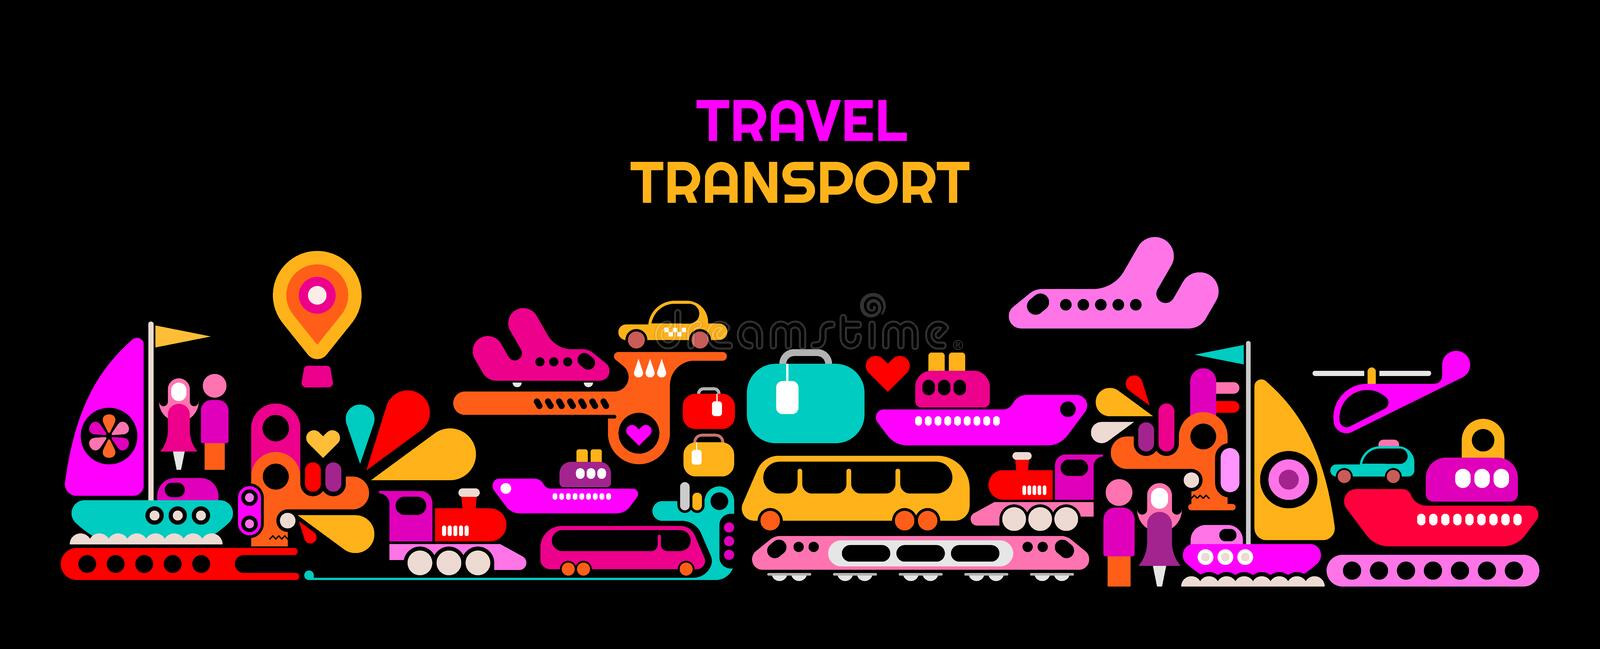 Travel Transport vector illustration stock illustration